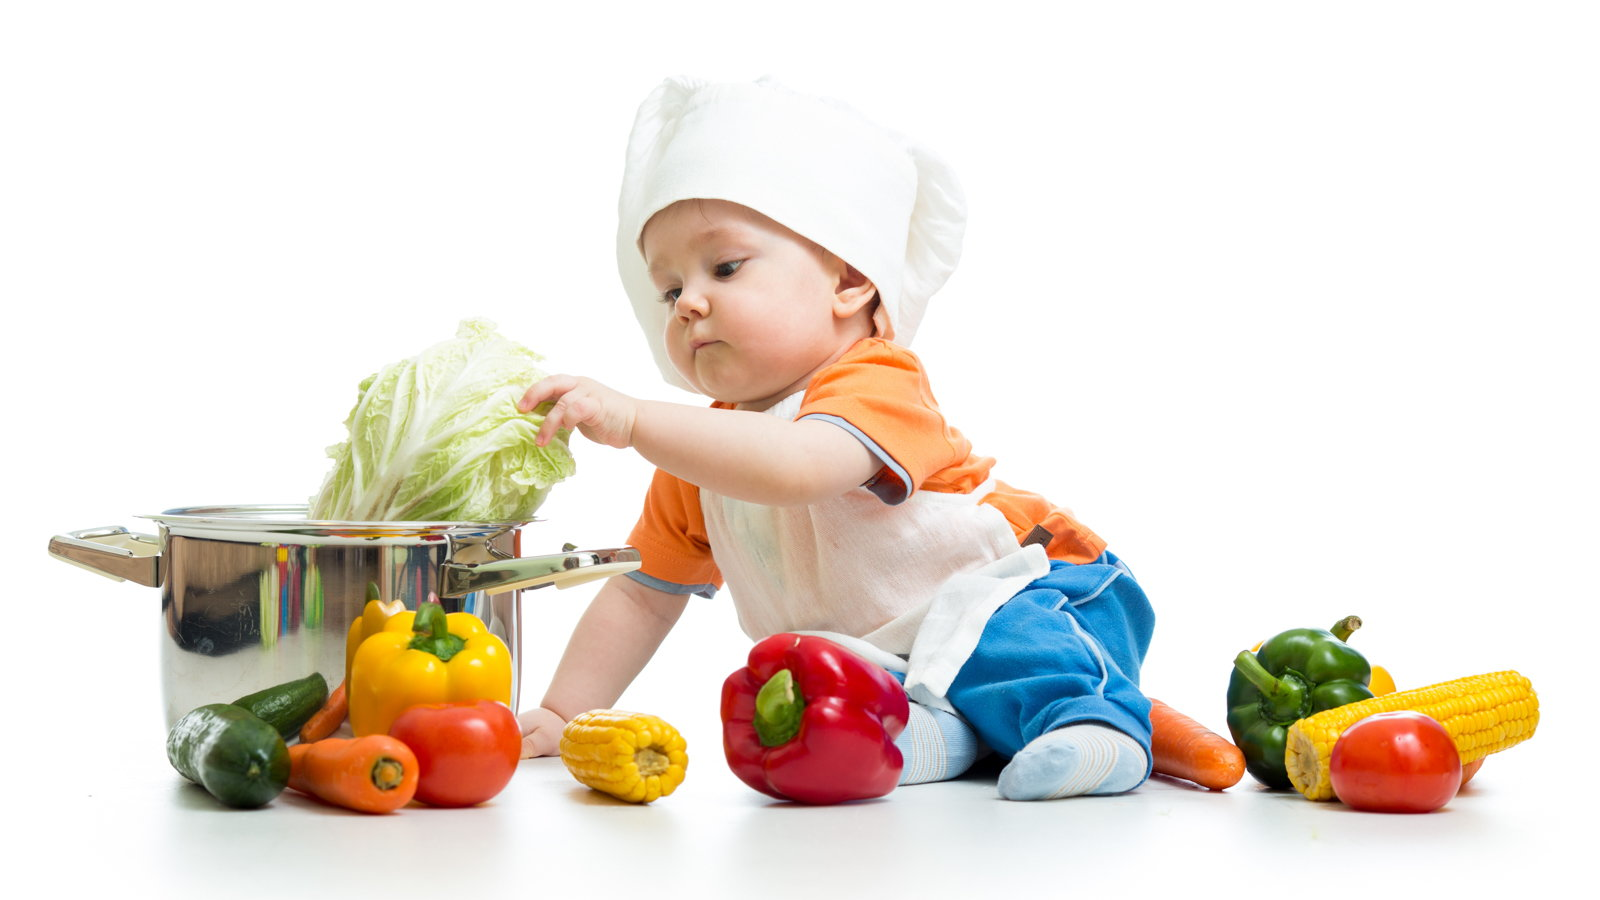 baby wearing chef's hat putting vegetables in pot